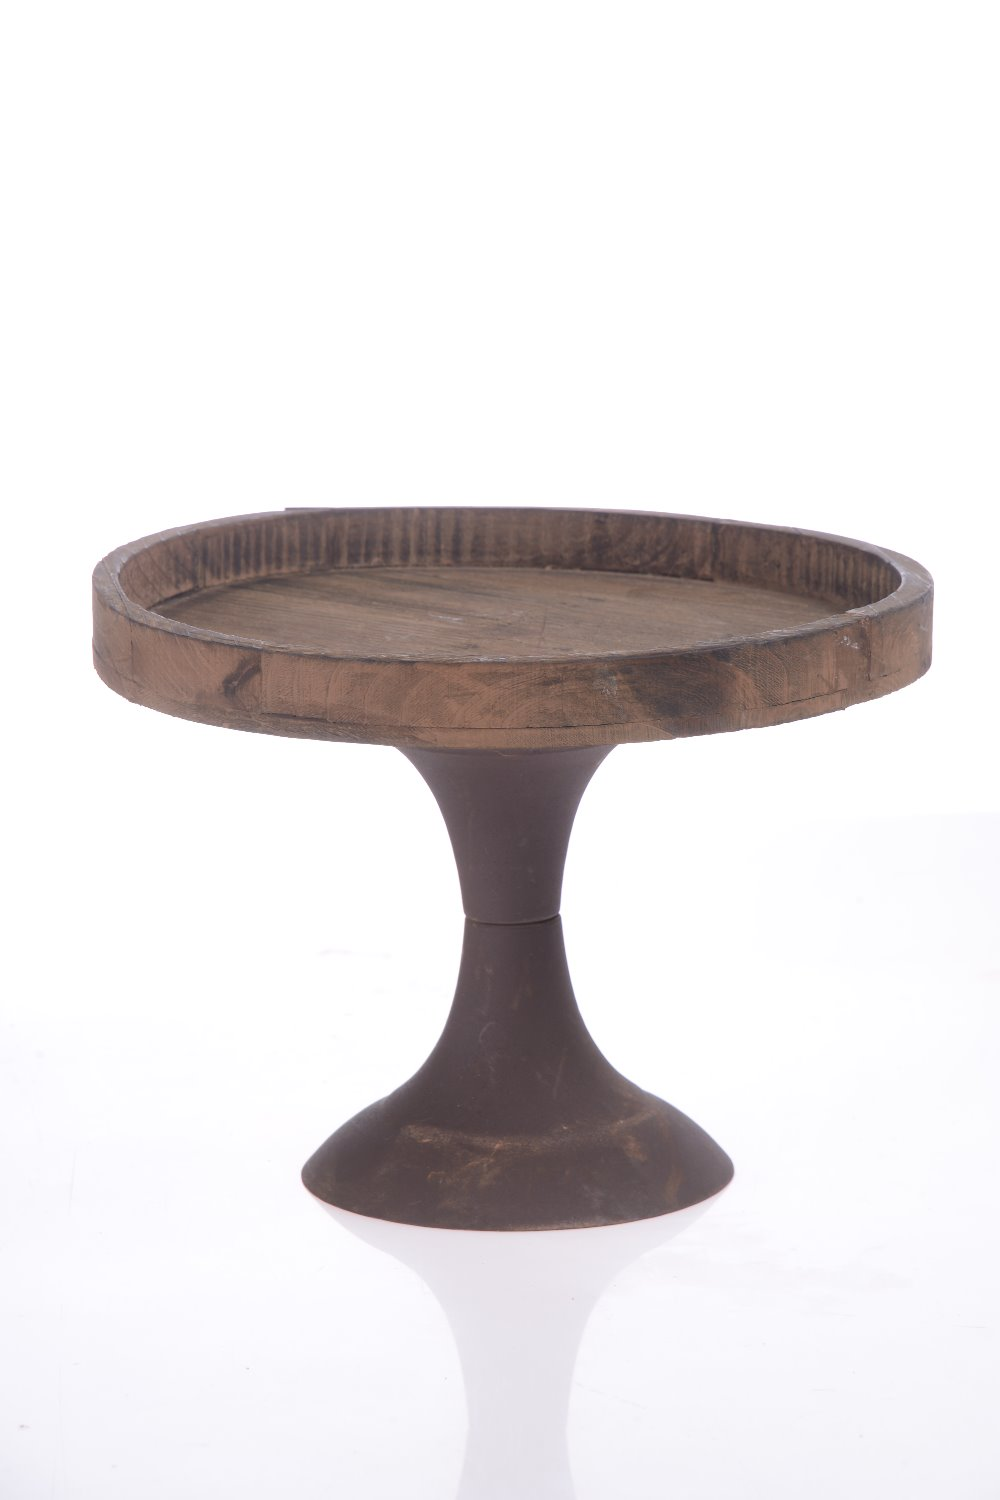 CAKE STANDS + ACCESSORIES